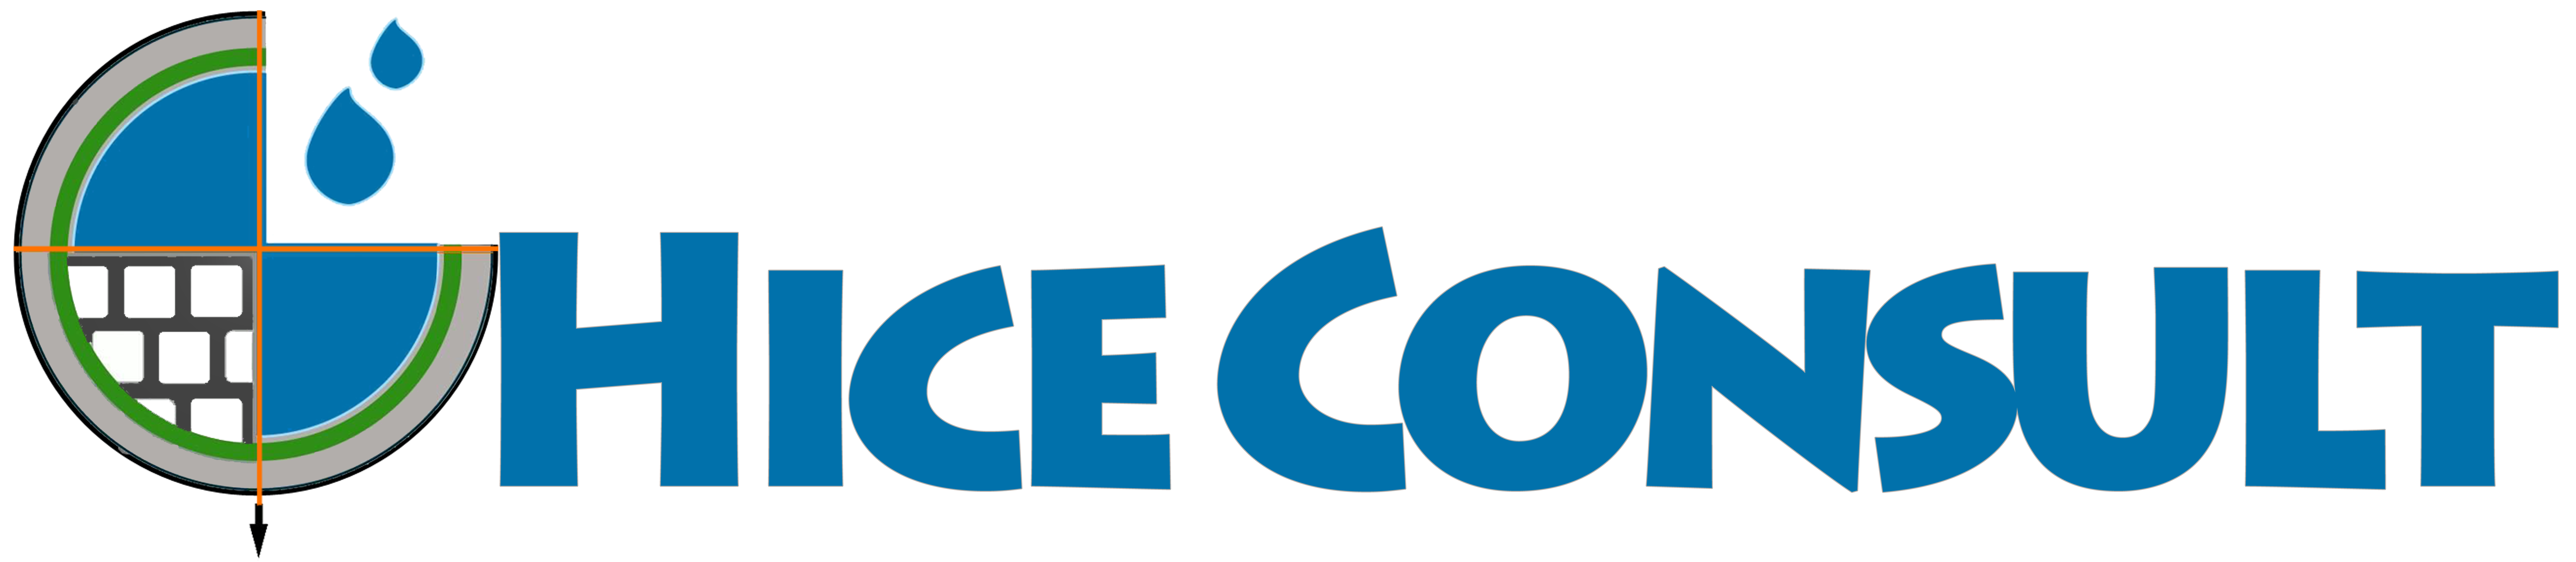 hieconsult